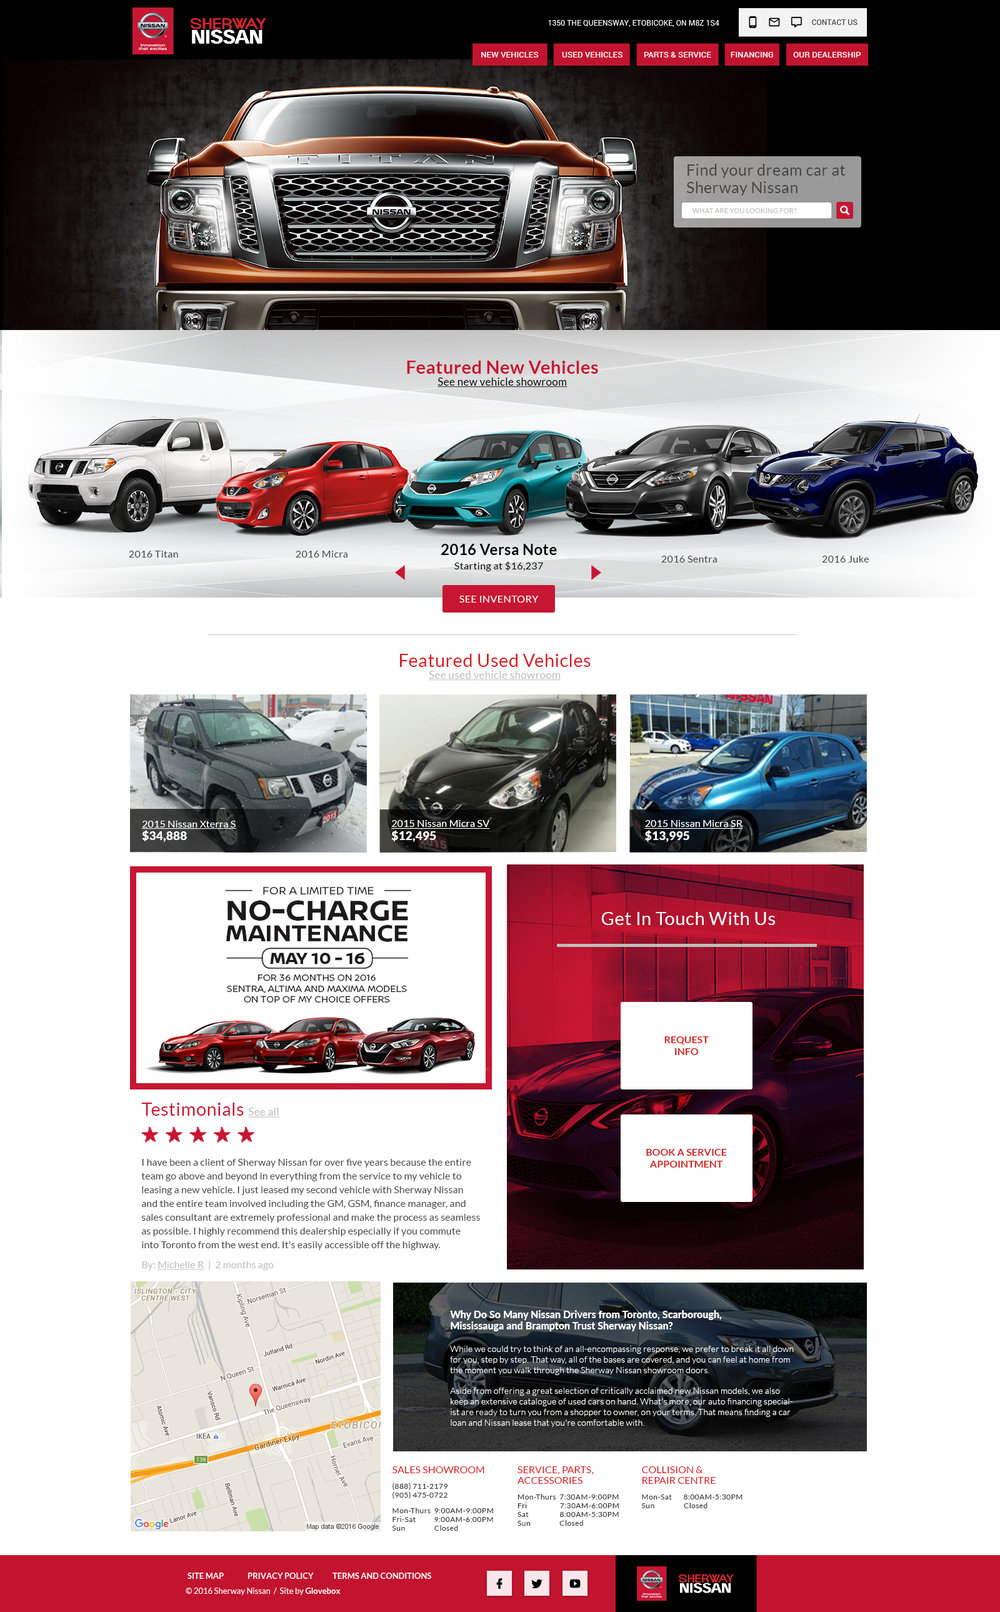 GB_SherwayNissan_Homepage_16001.jpg